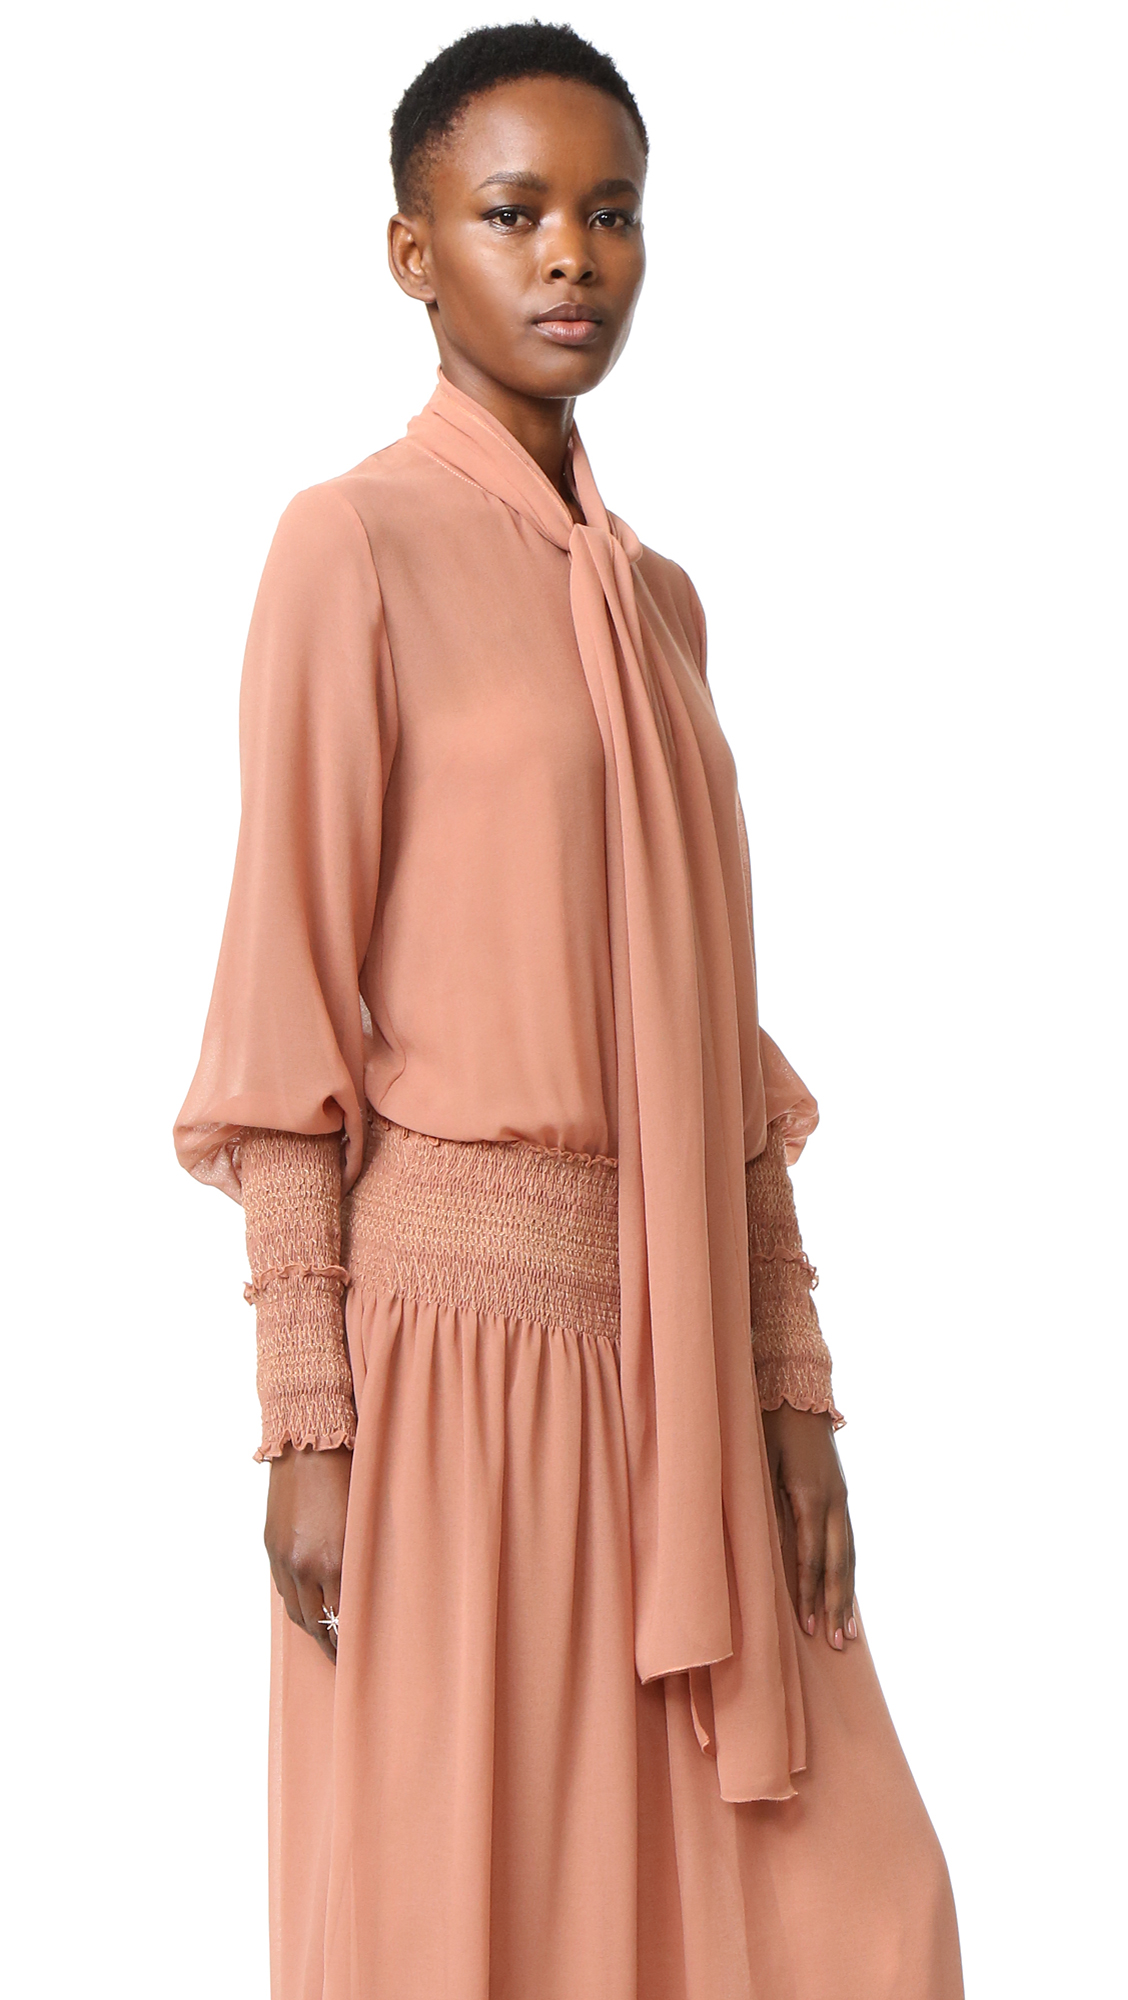 Maxi Code 25Use DressShopbop Save By Up Chloe Neck To Tie See Ybgvmf7yI6